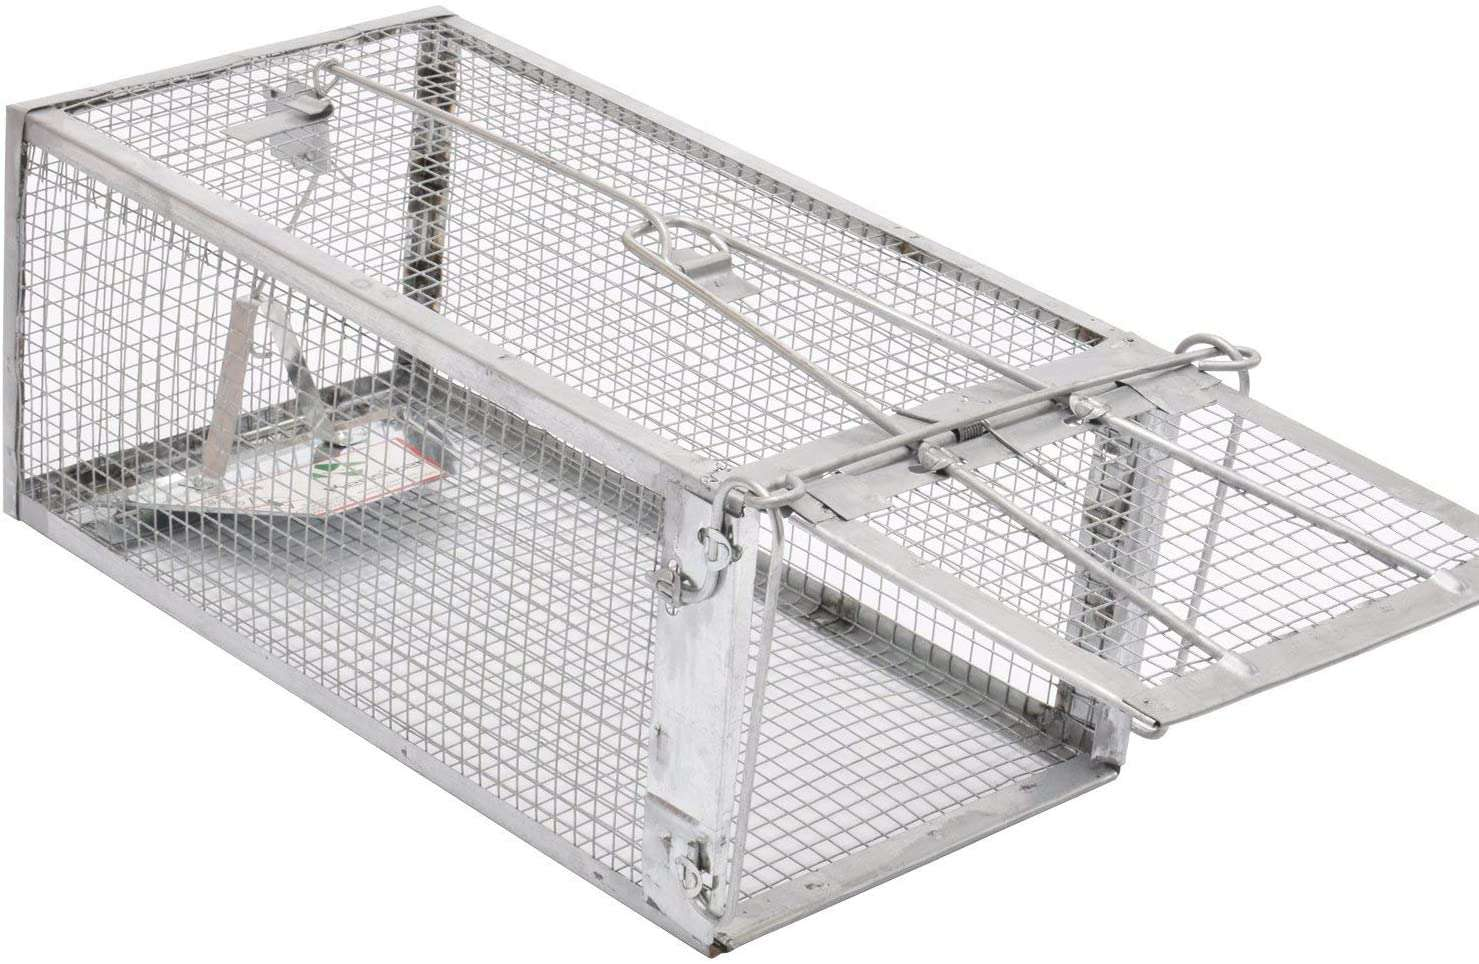 Kensizer Small Animal Humane Live Cage